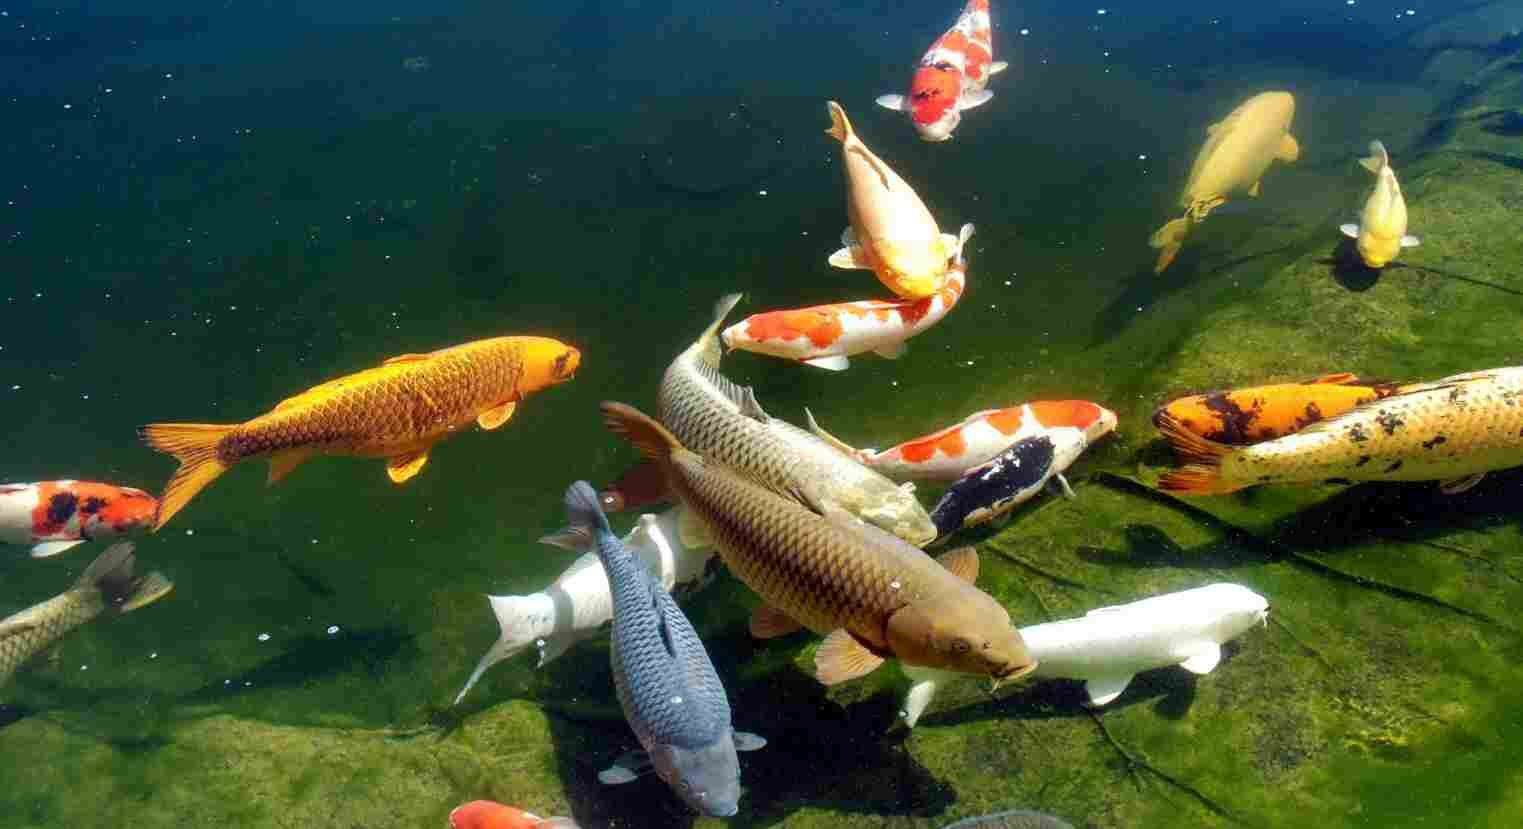 Koi fish pond wallpaper hd koi fish in the pond koi for Fish pond images